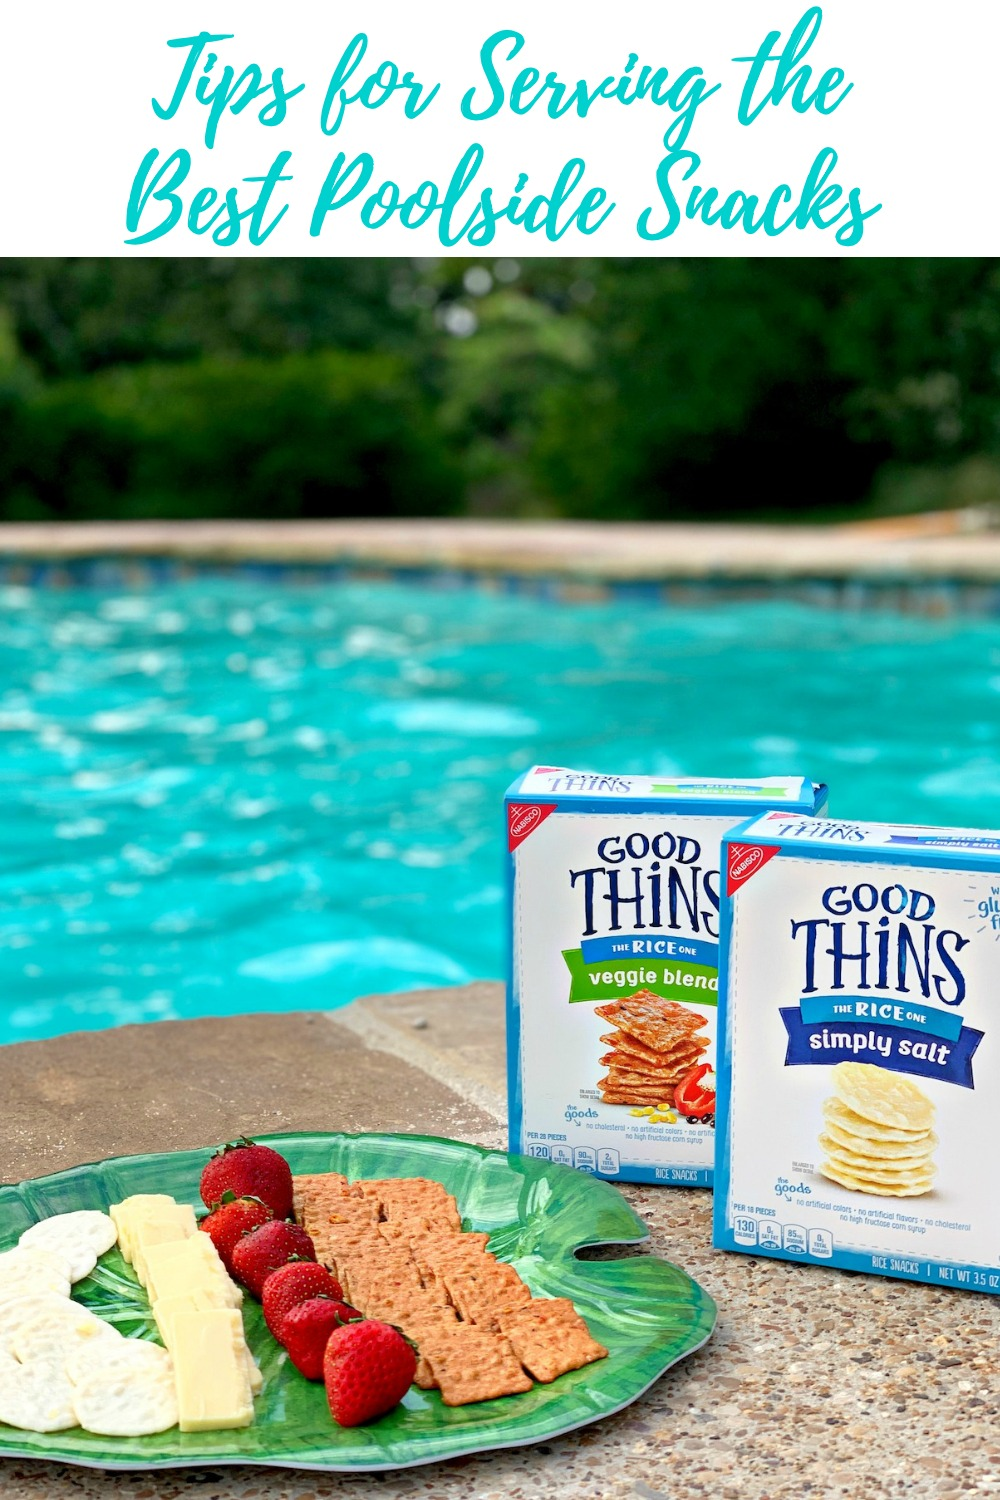 Tips for Serving the Best Poolside Snacks